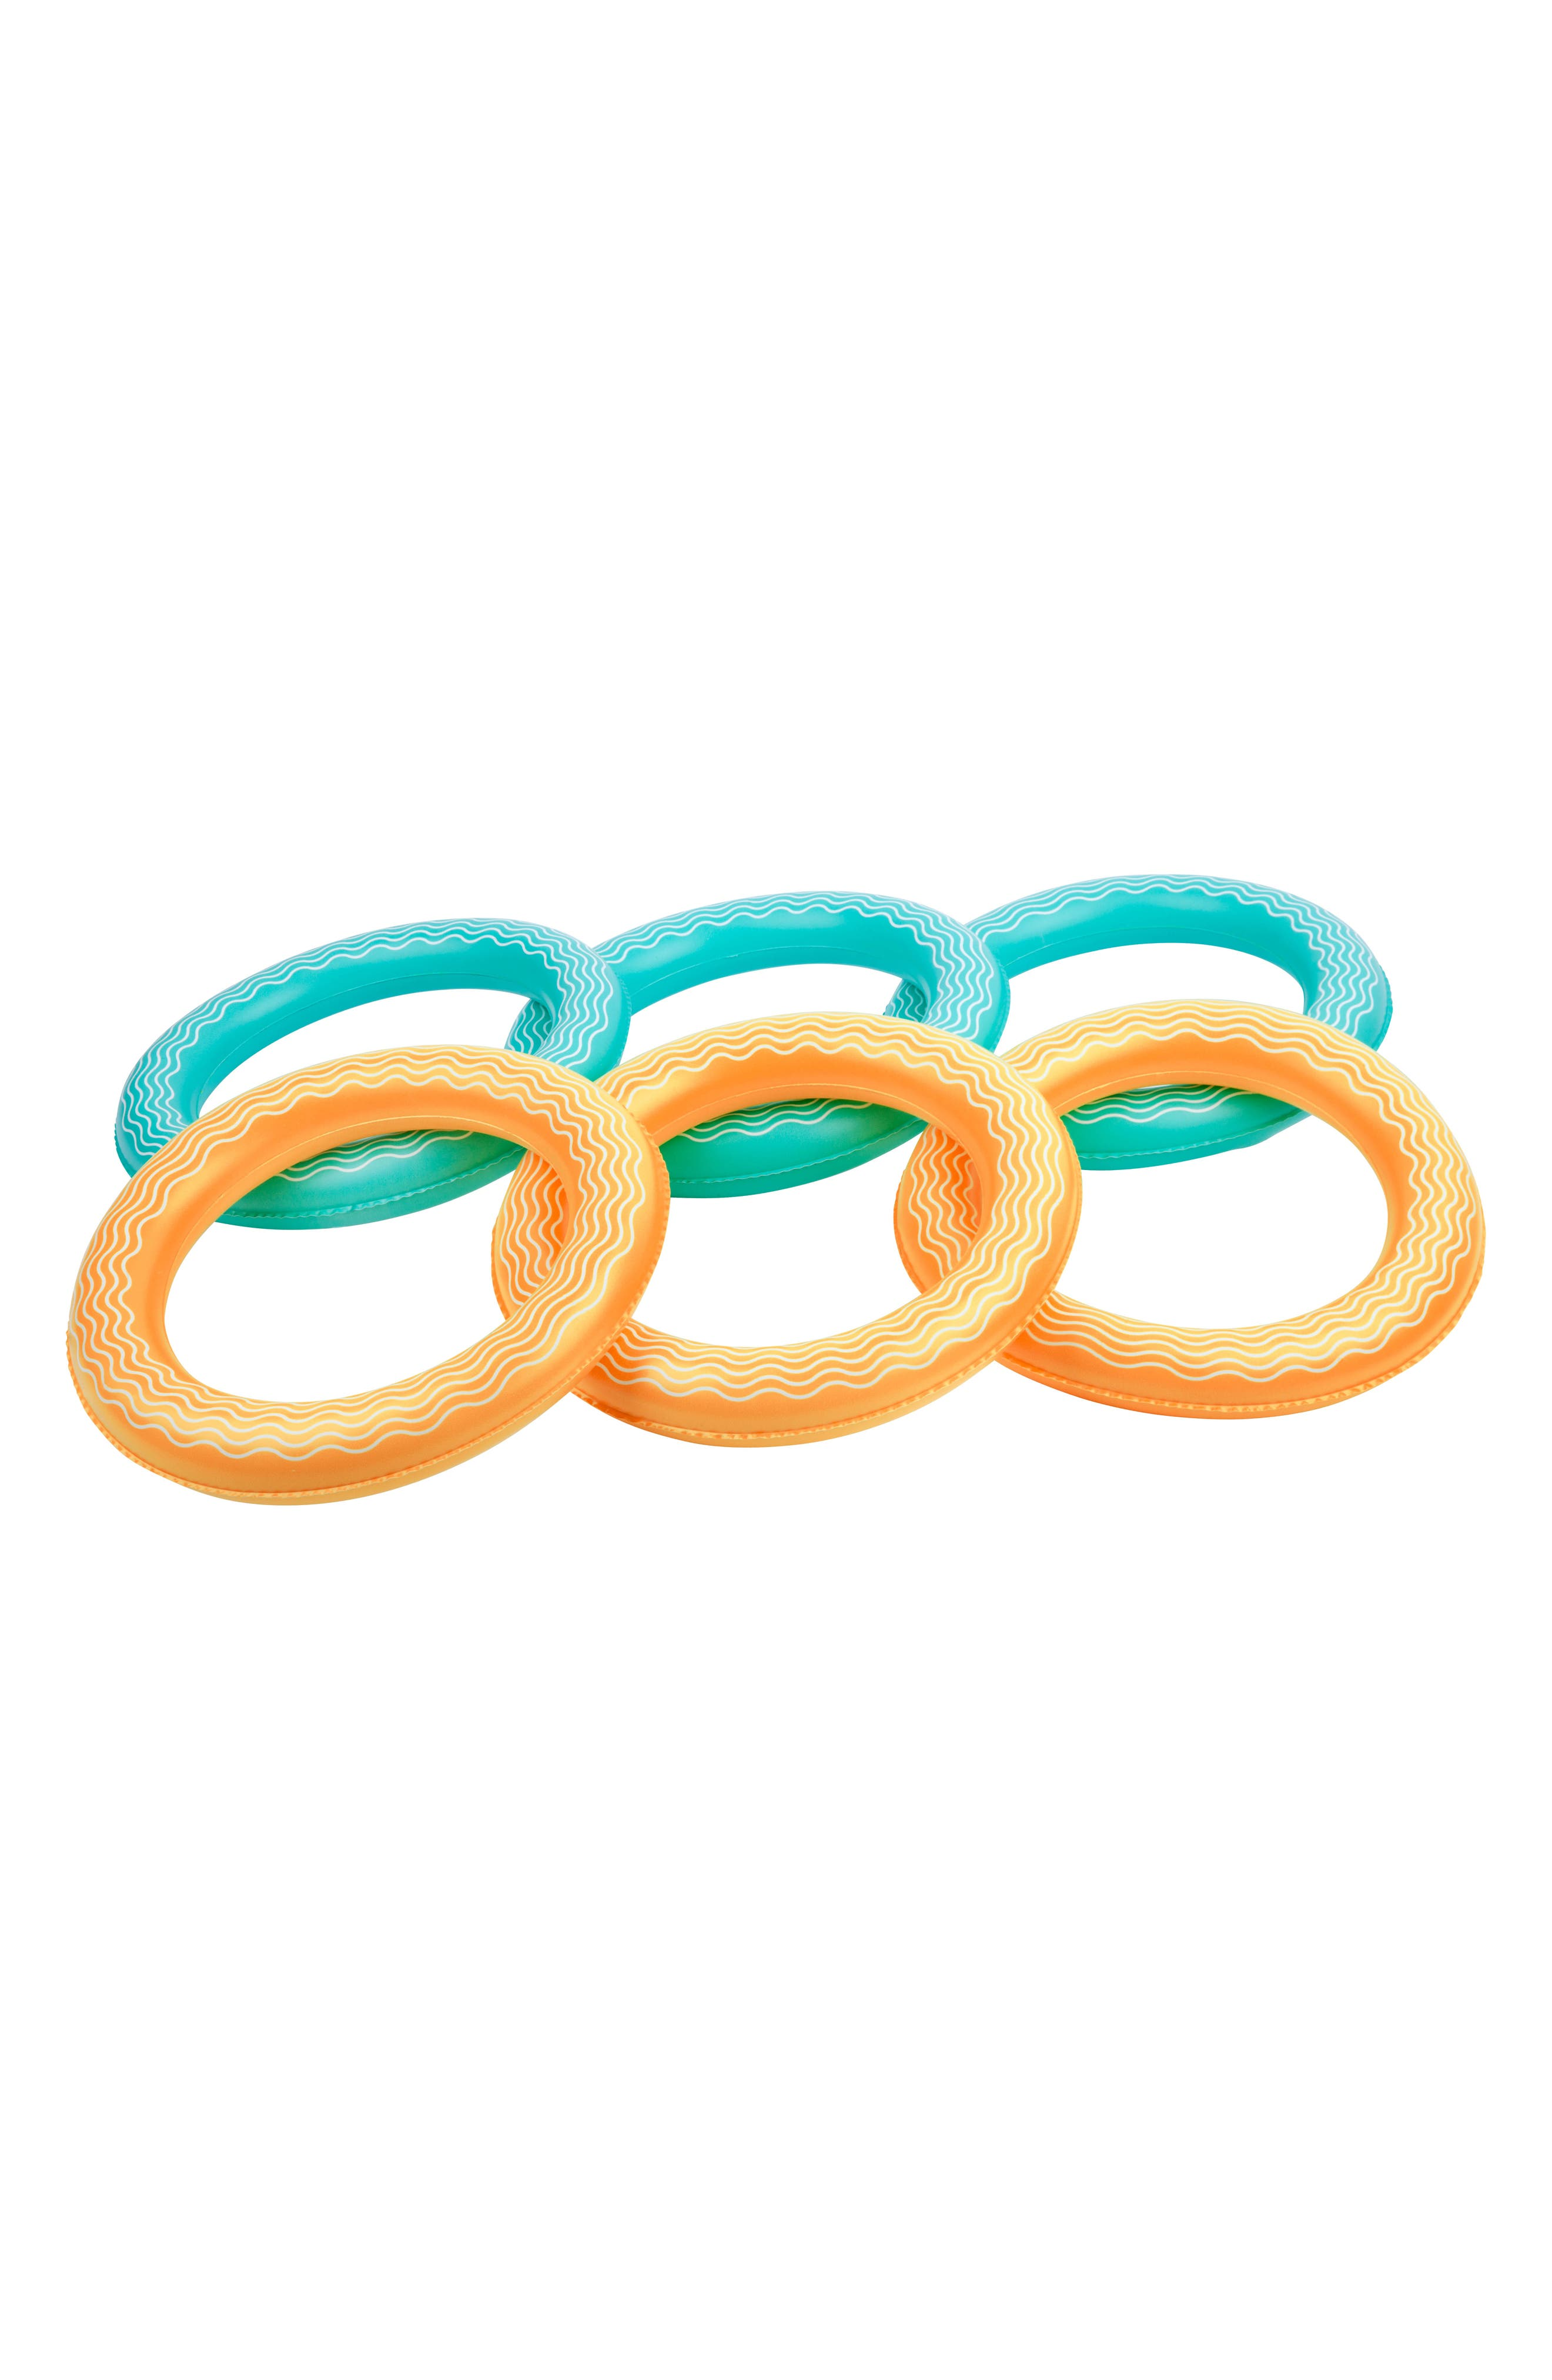 Inflatable Crab 7-Piece Ring Toss Game,                             Alternate thumbnail 3, color,                             Multi